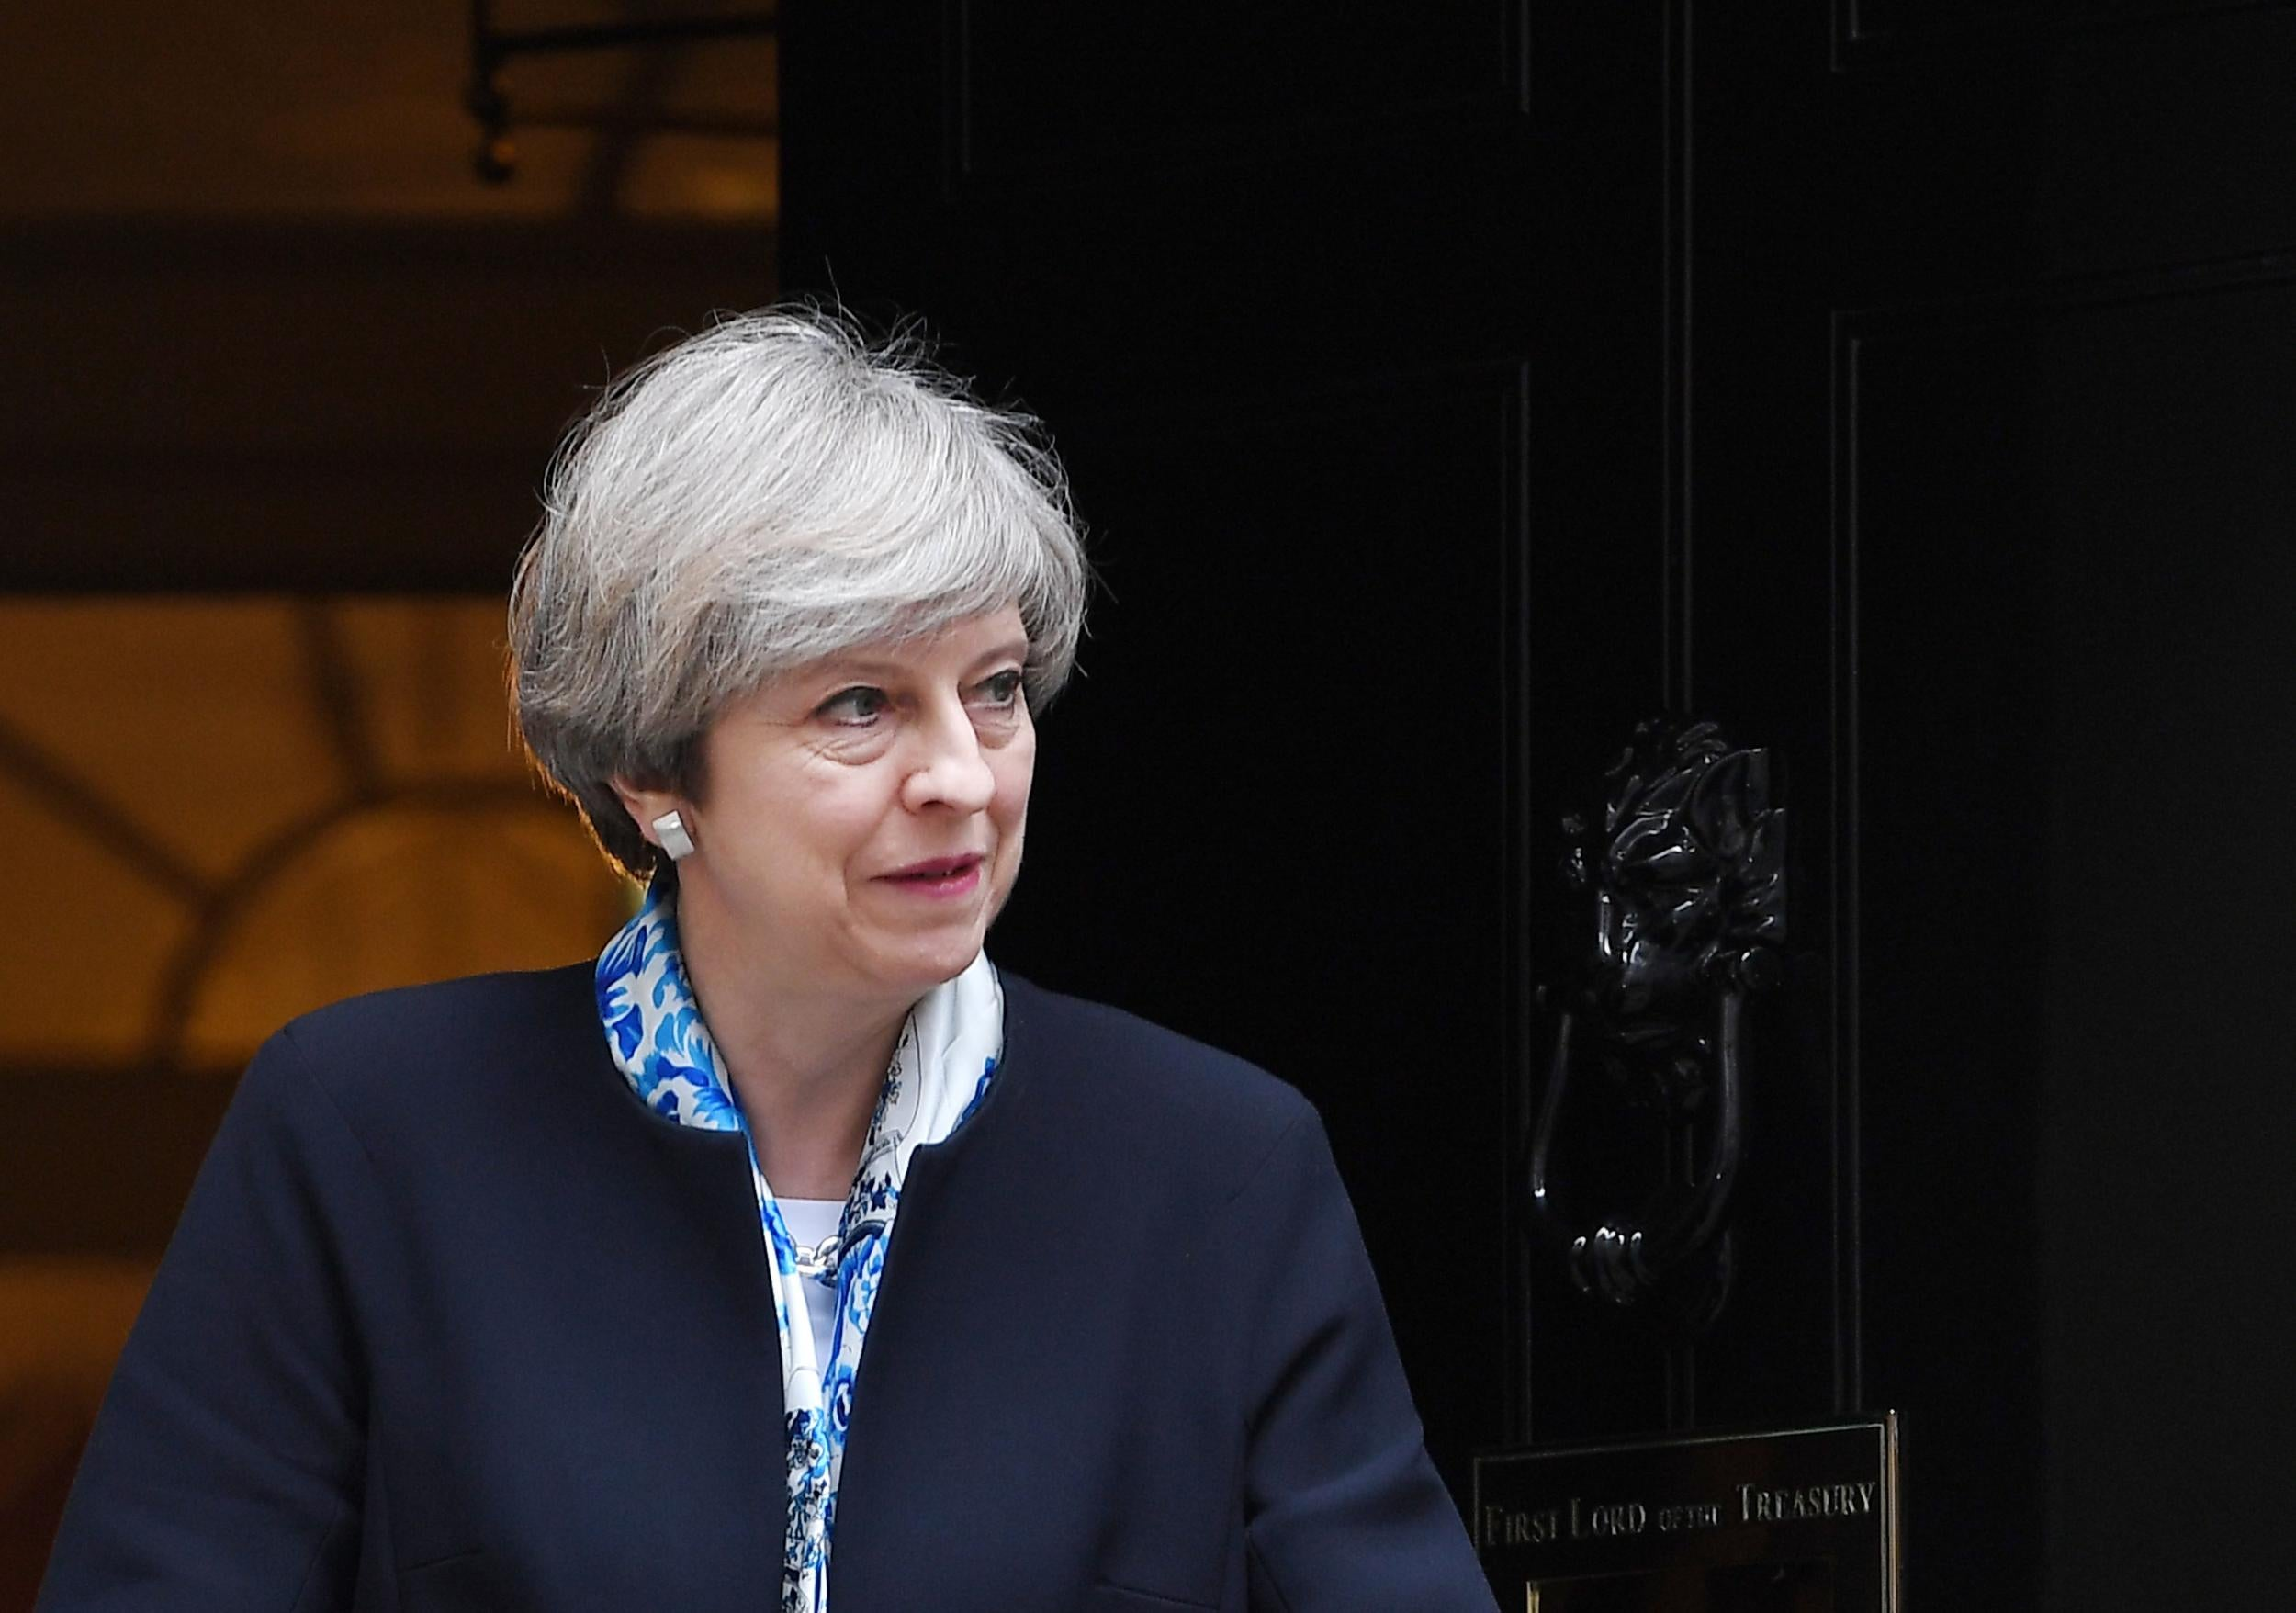 Theresa May uses Easter message to suggest there is a 'sense of coming together' after Brexit divisions